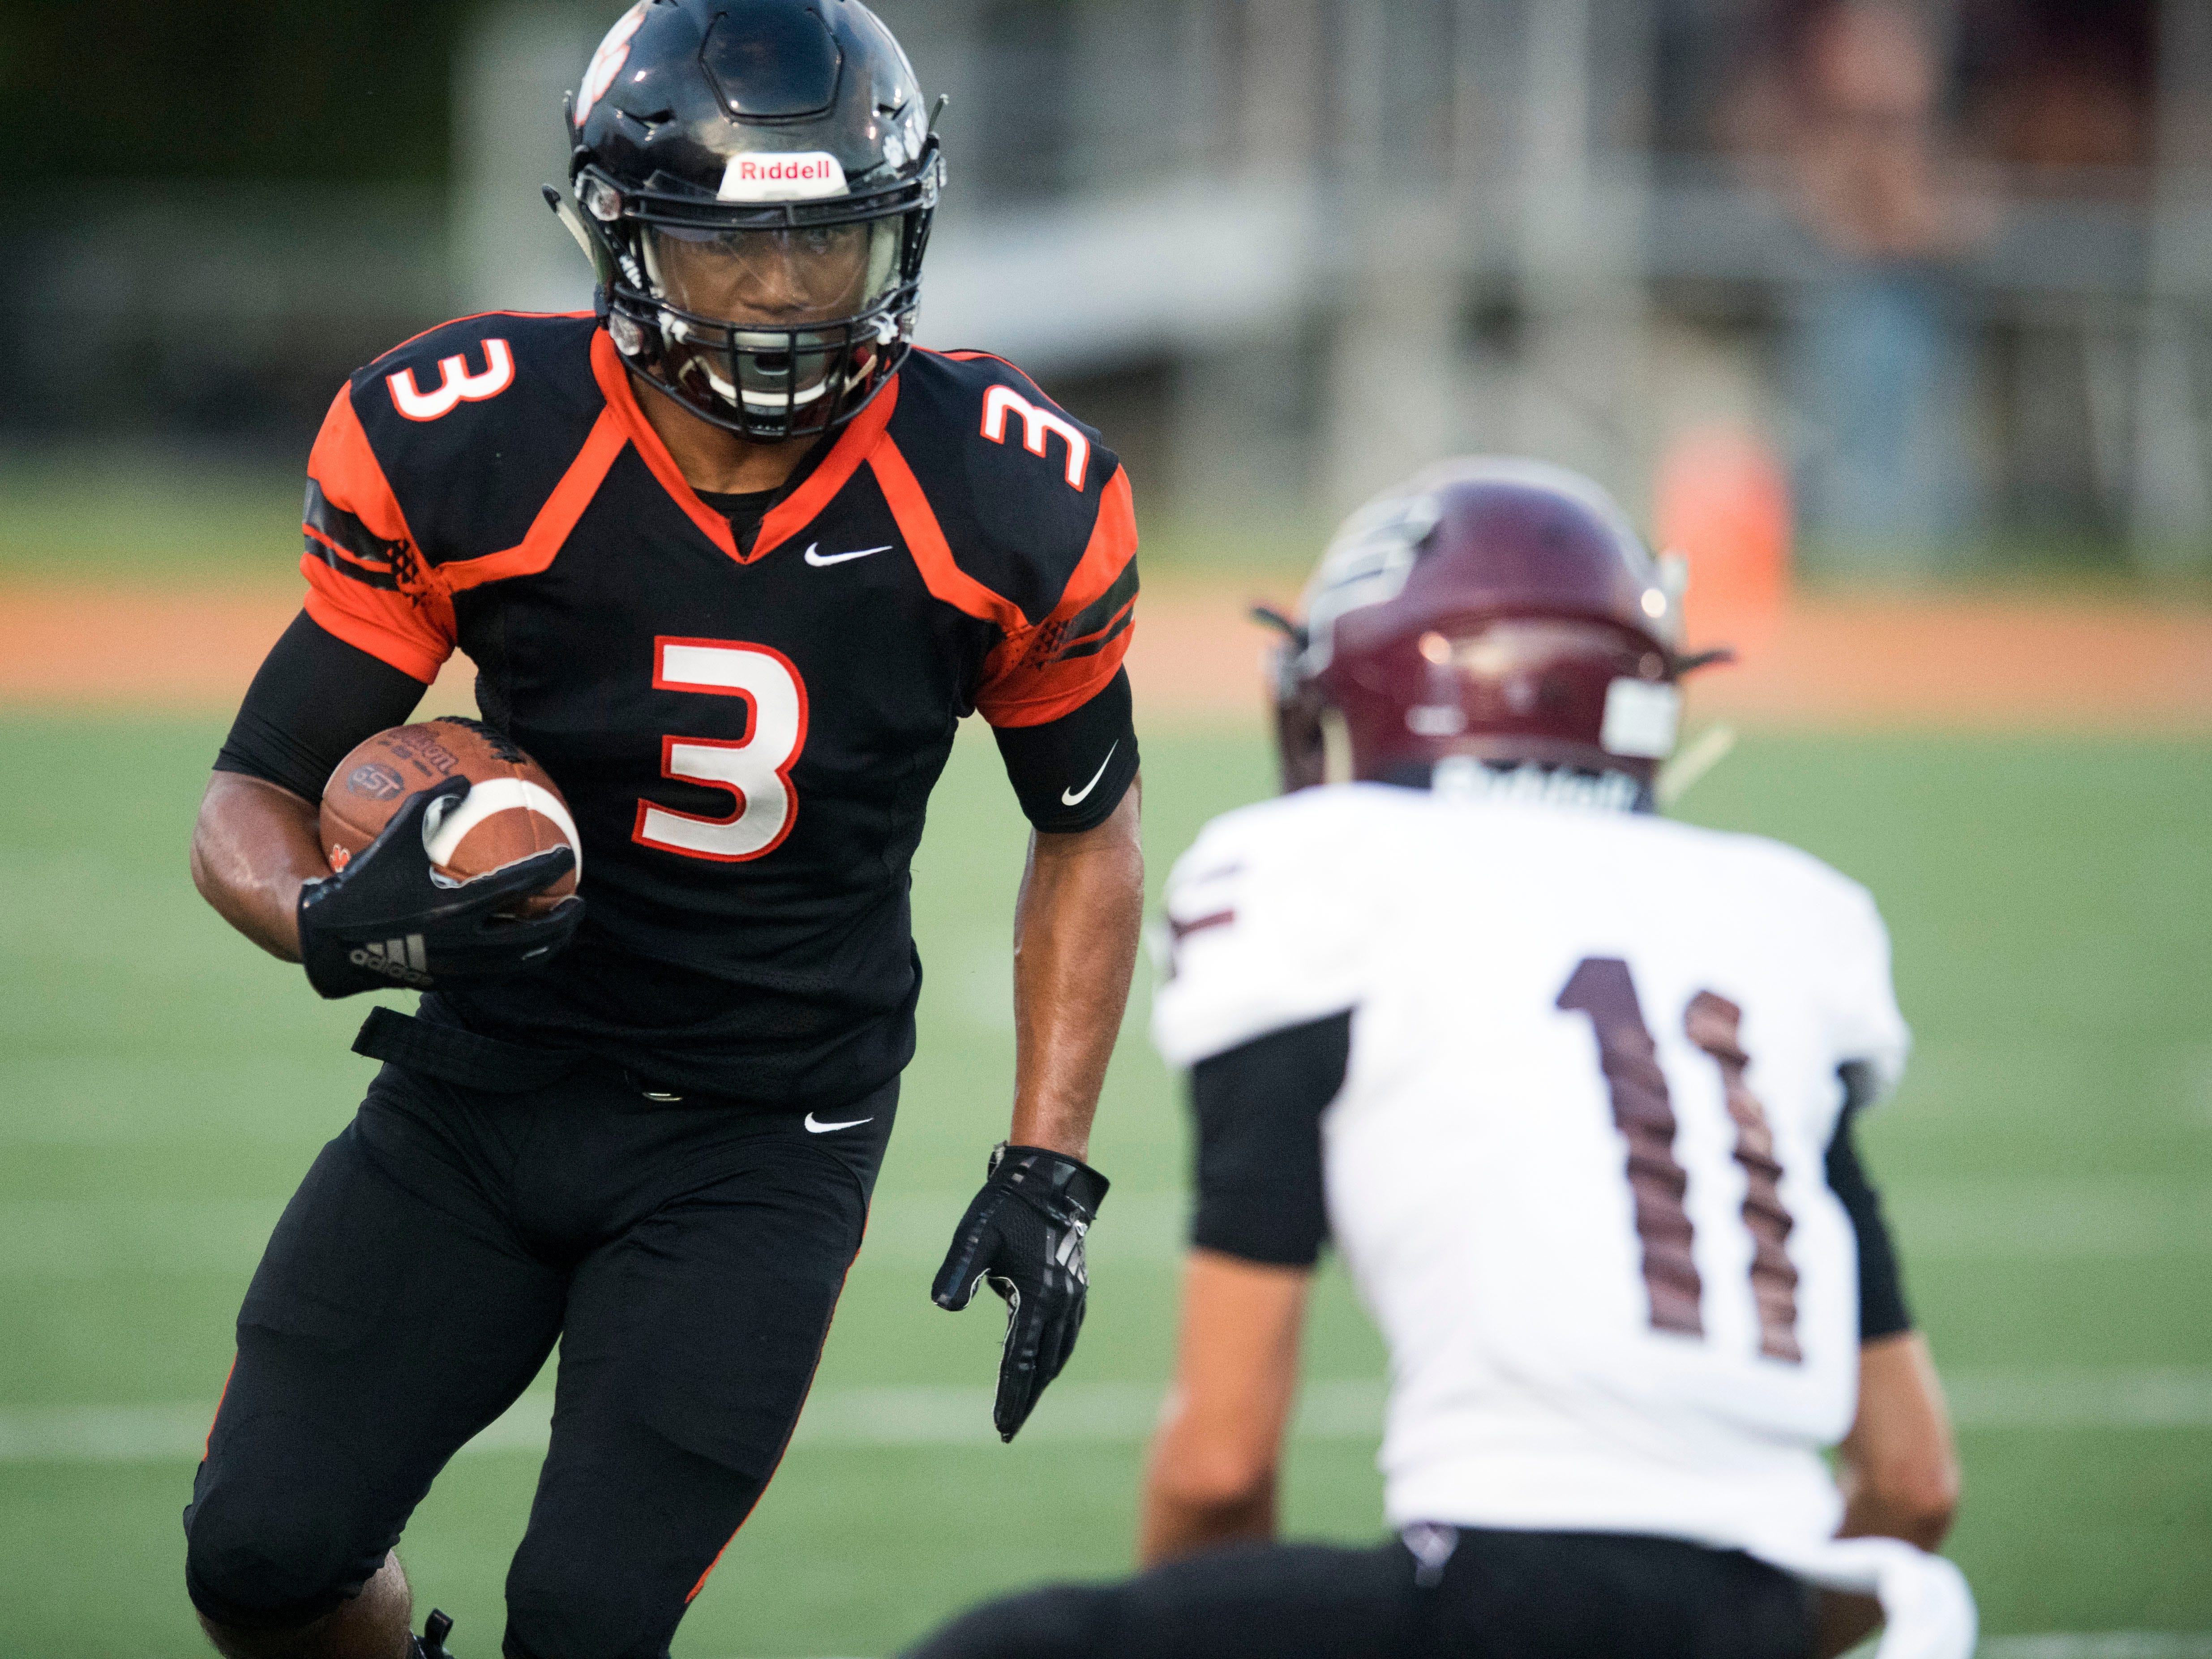 Powell's Bailor Walker (3) comes up against Fulton's Kenny Buley (11) during the football game at Powell on Friday, August 31, 2018.